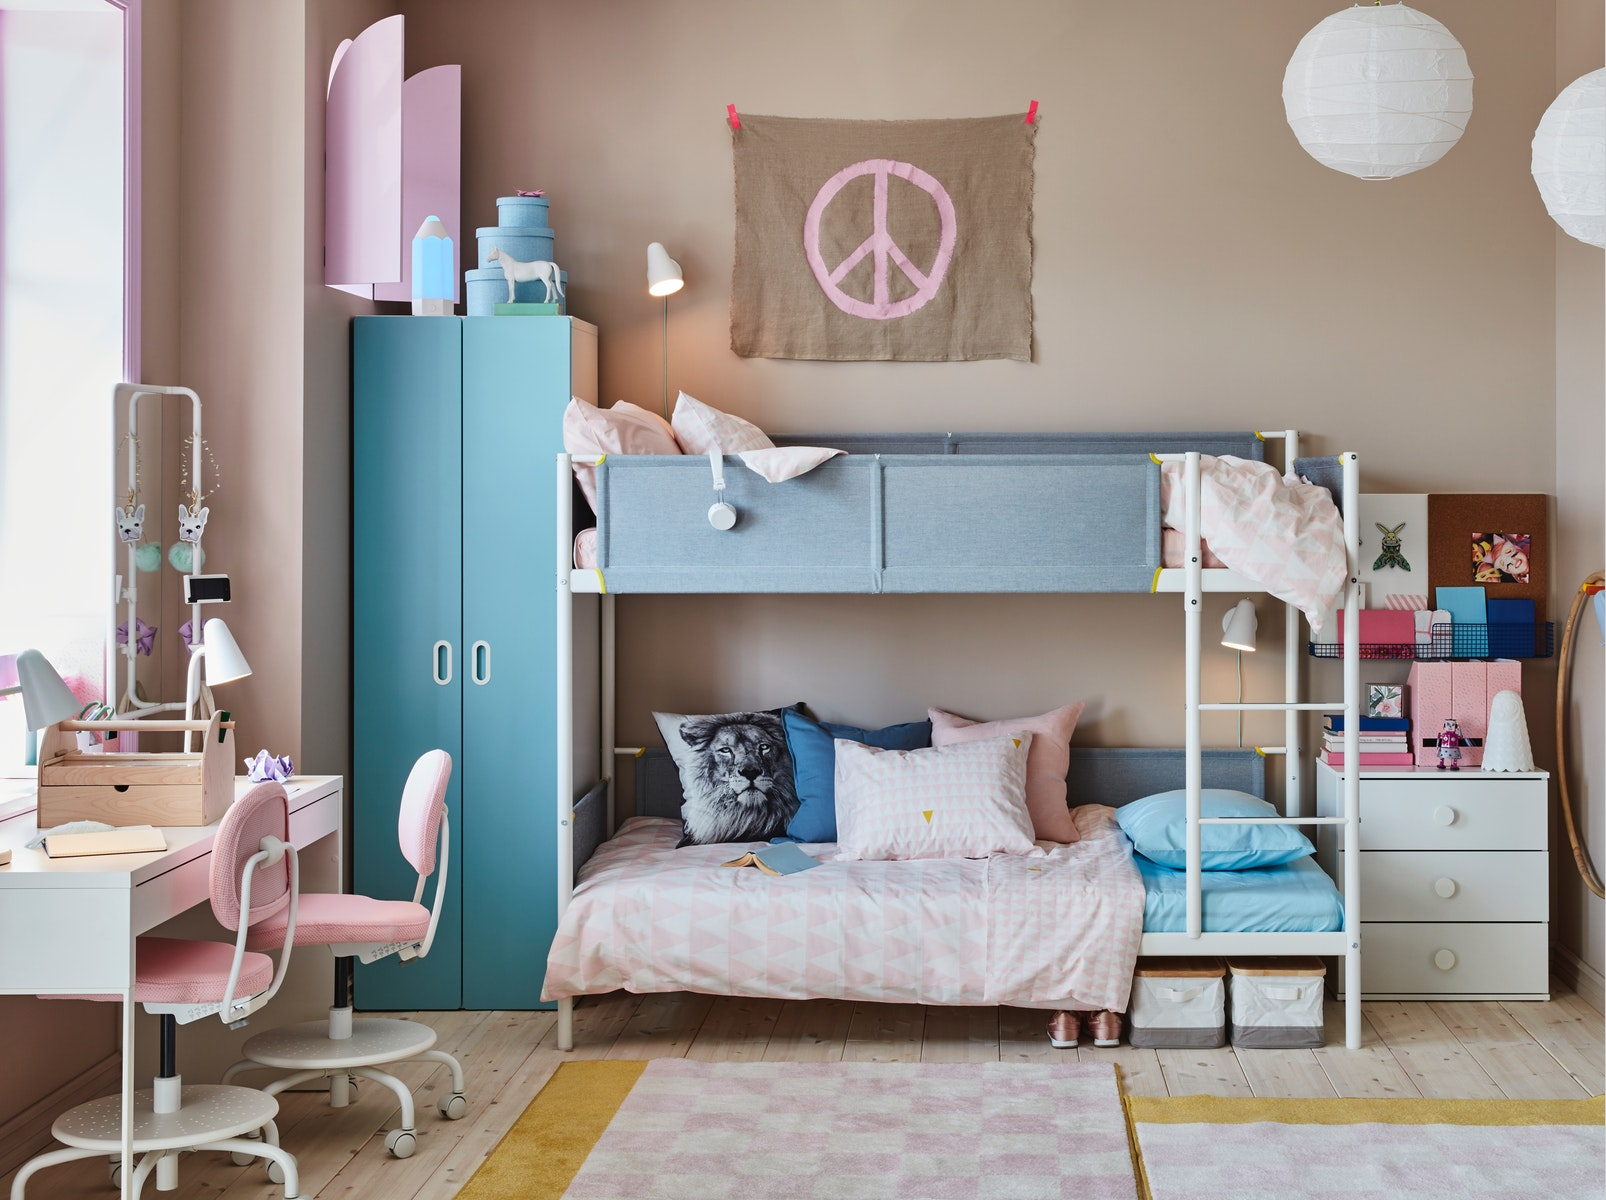 A children's room for two where their creativity can bloom